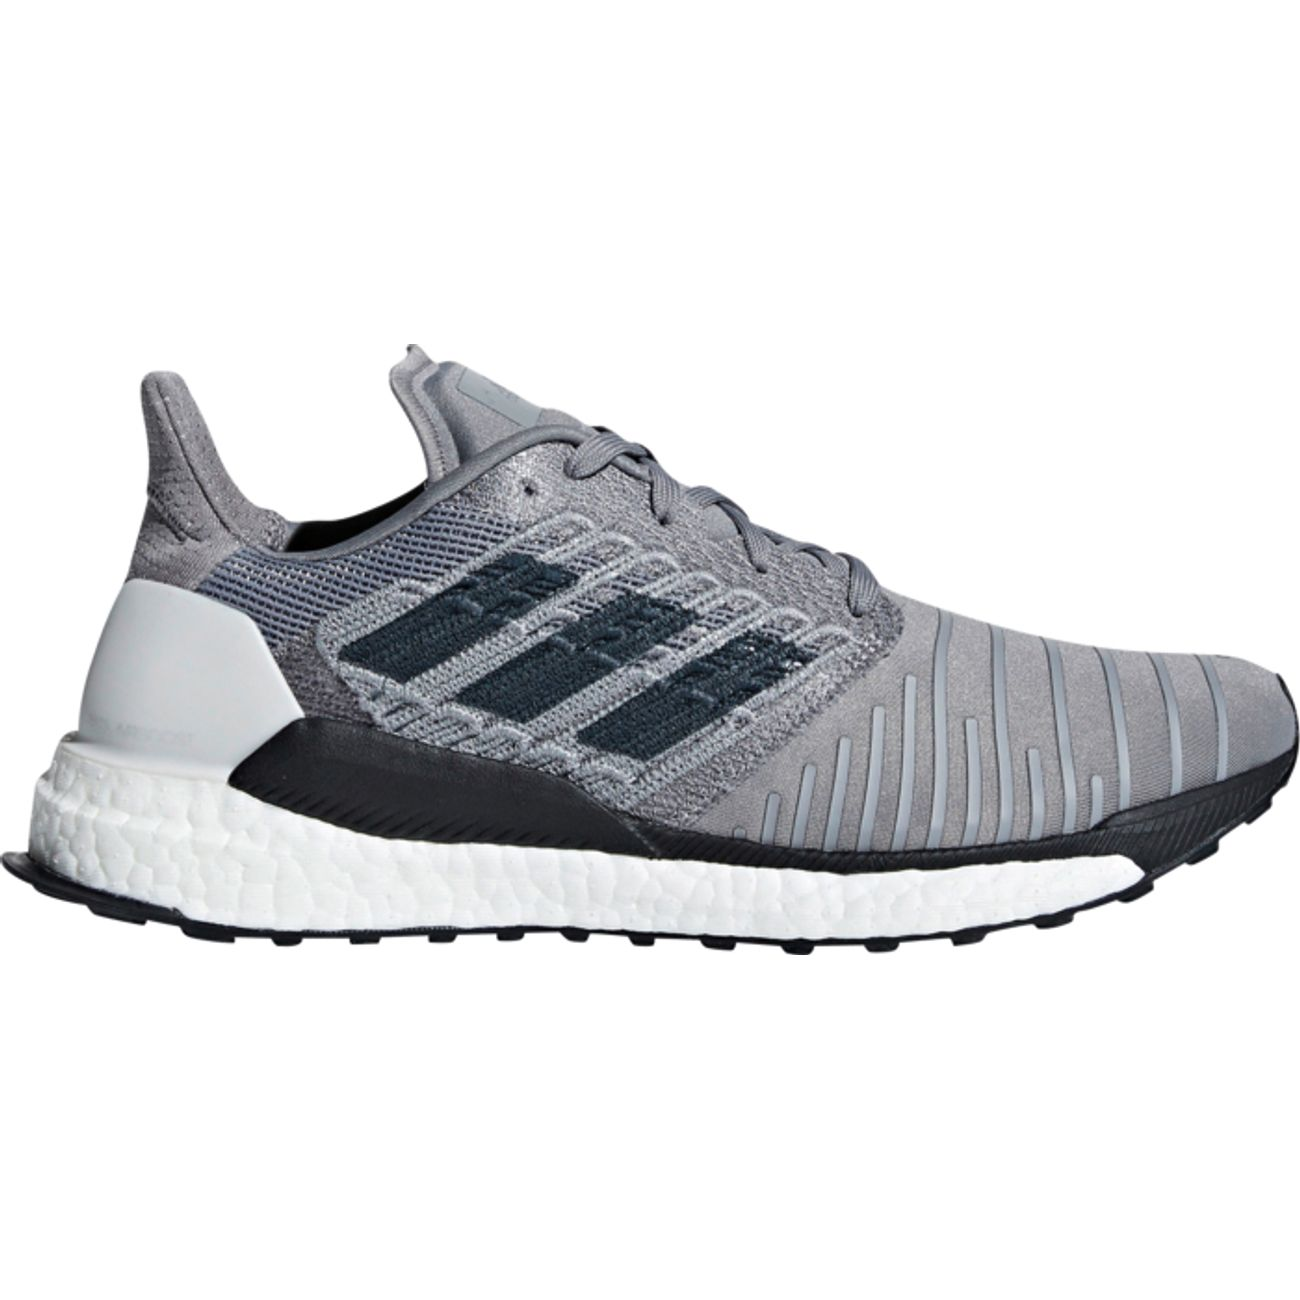 CHAUSSURES BASSES running homme ADIDAS SOLAR BOOST